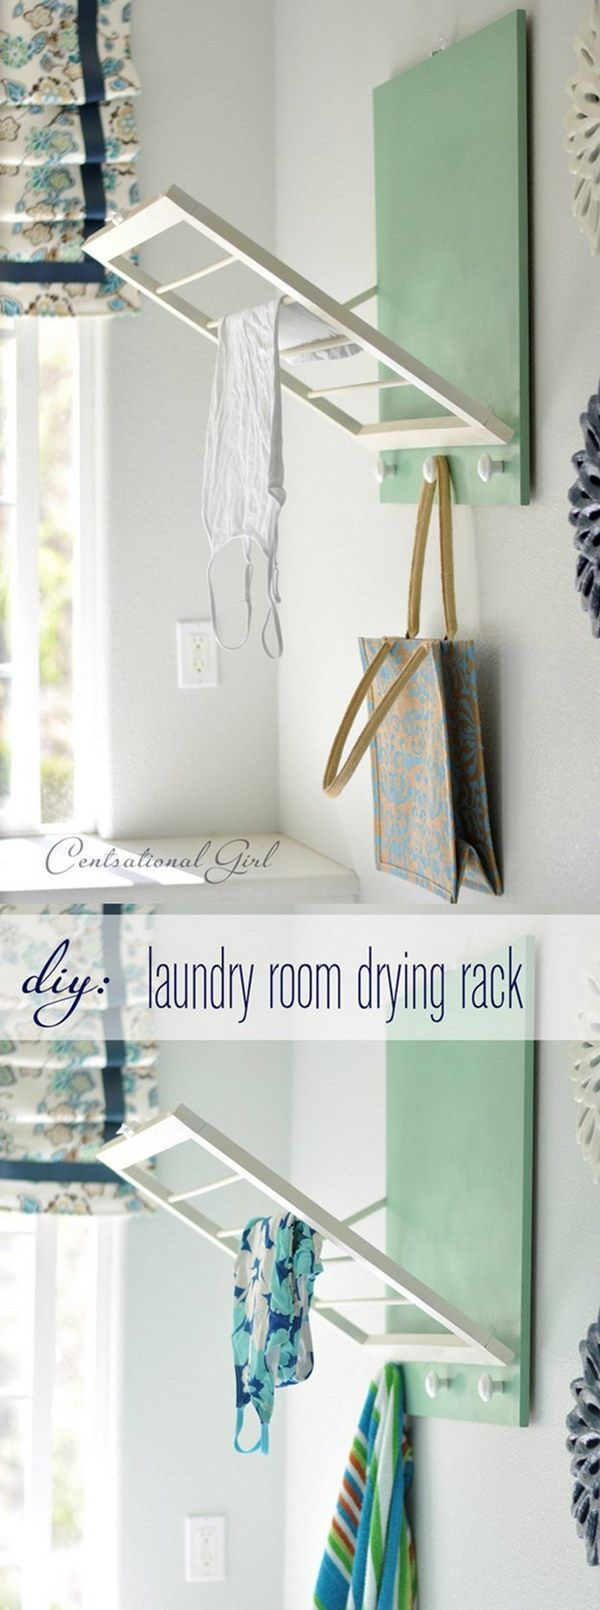 diy laundry room drying rack this diy laundry room drying rack is perfect for a